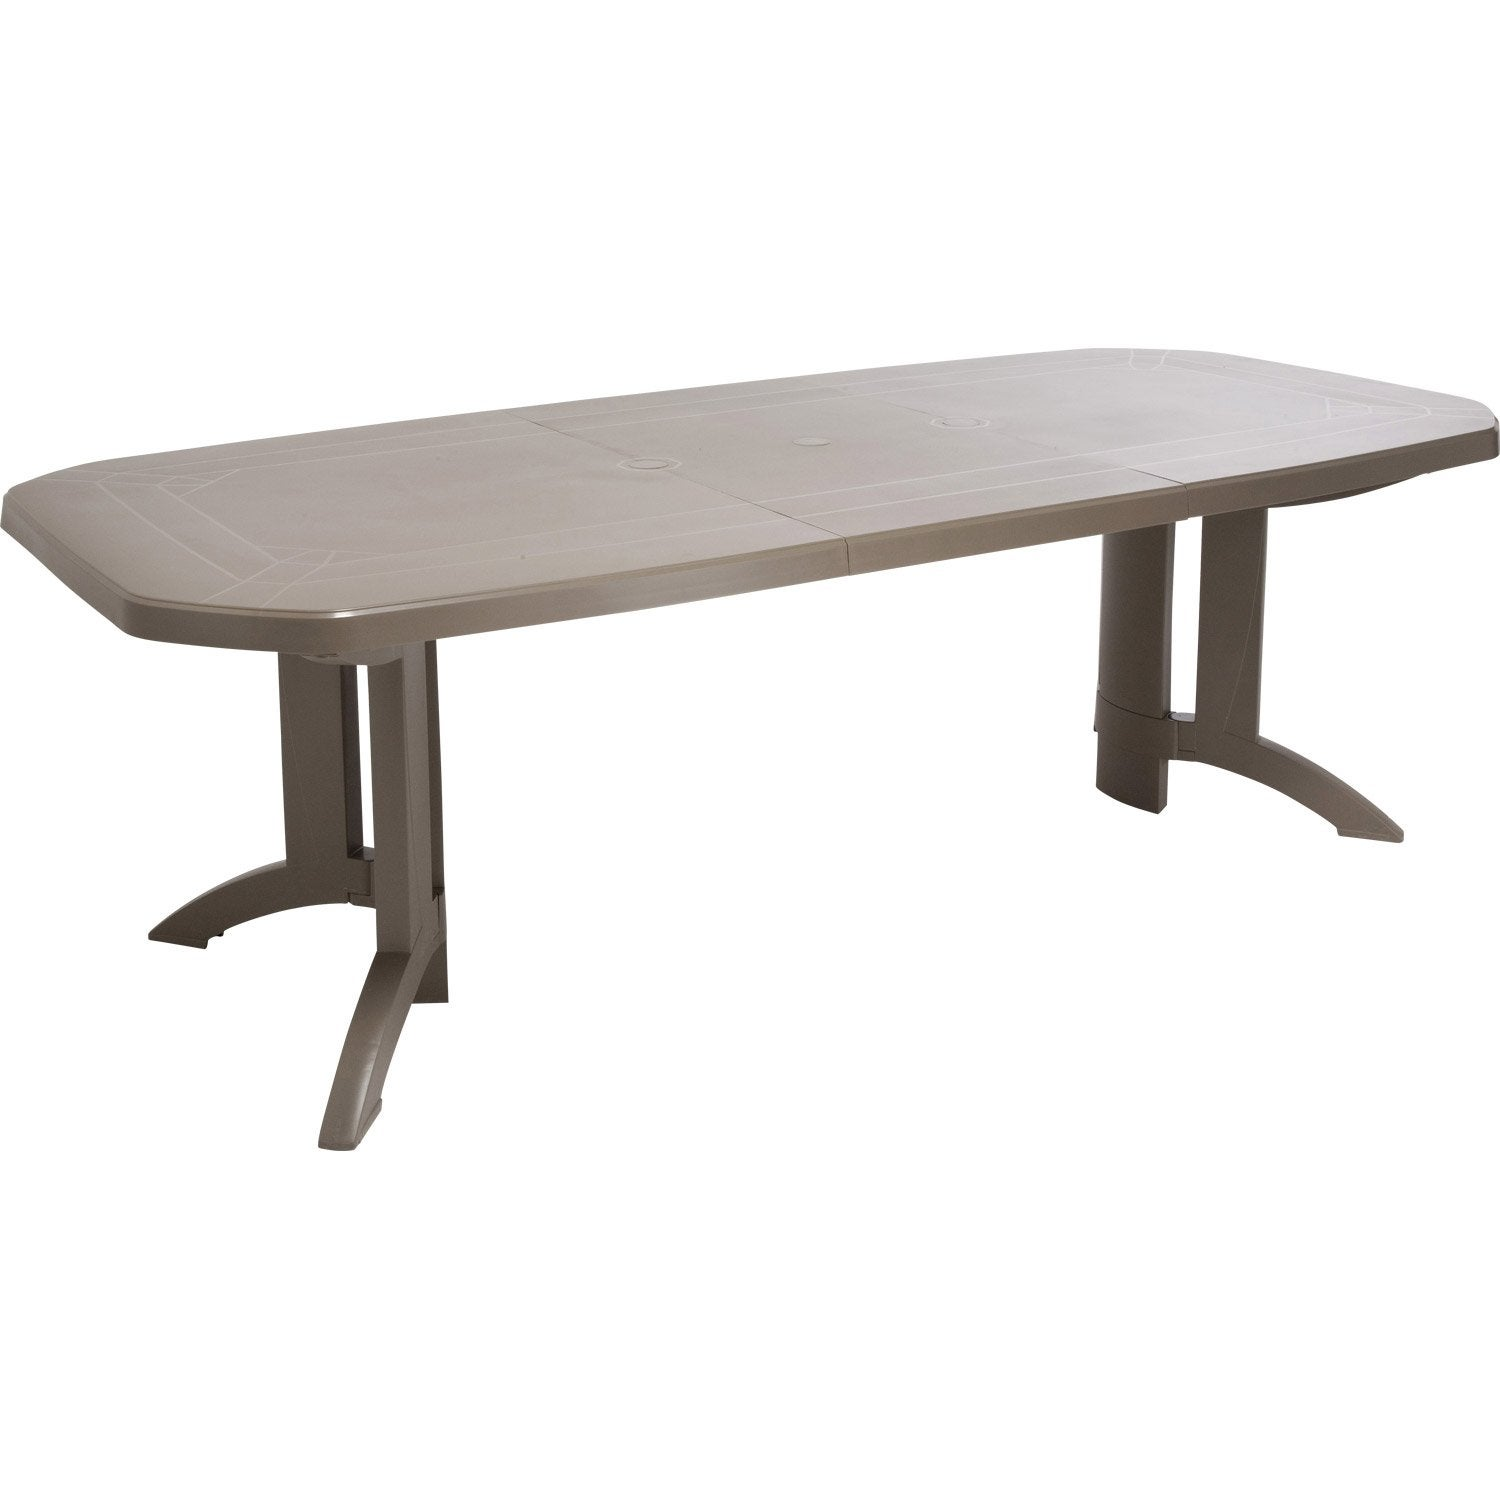 Table de jardin grosfillex v ga rectangulaire taupe 10 - Table de jardin rallonge ...